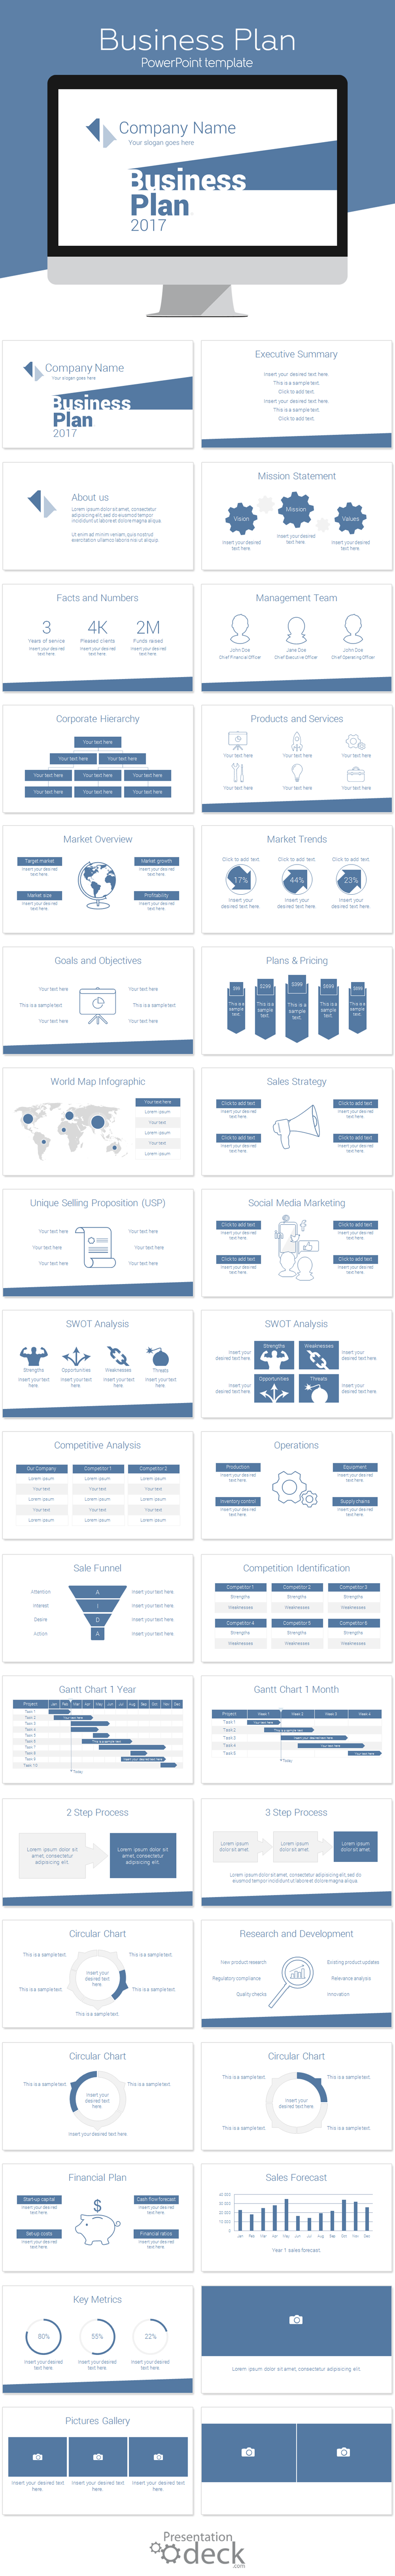 Minimal Business Plan PowerPoint Template   Business planning ...